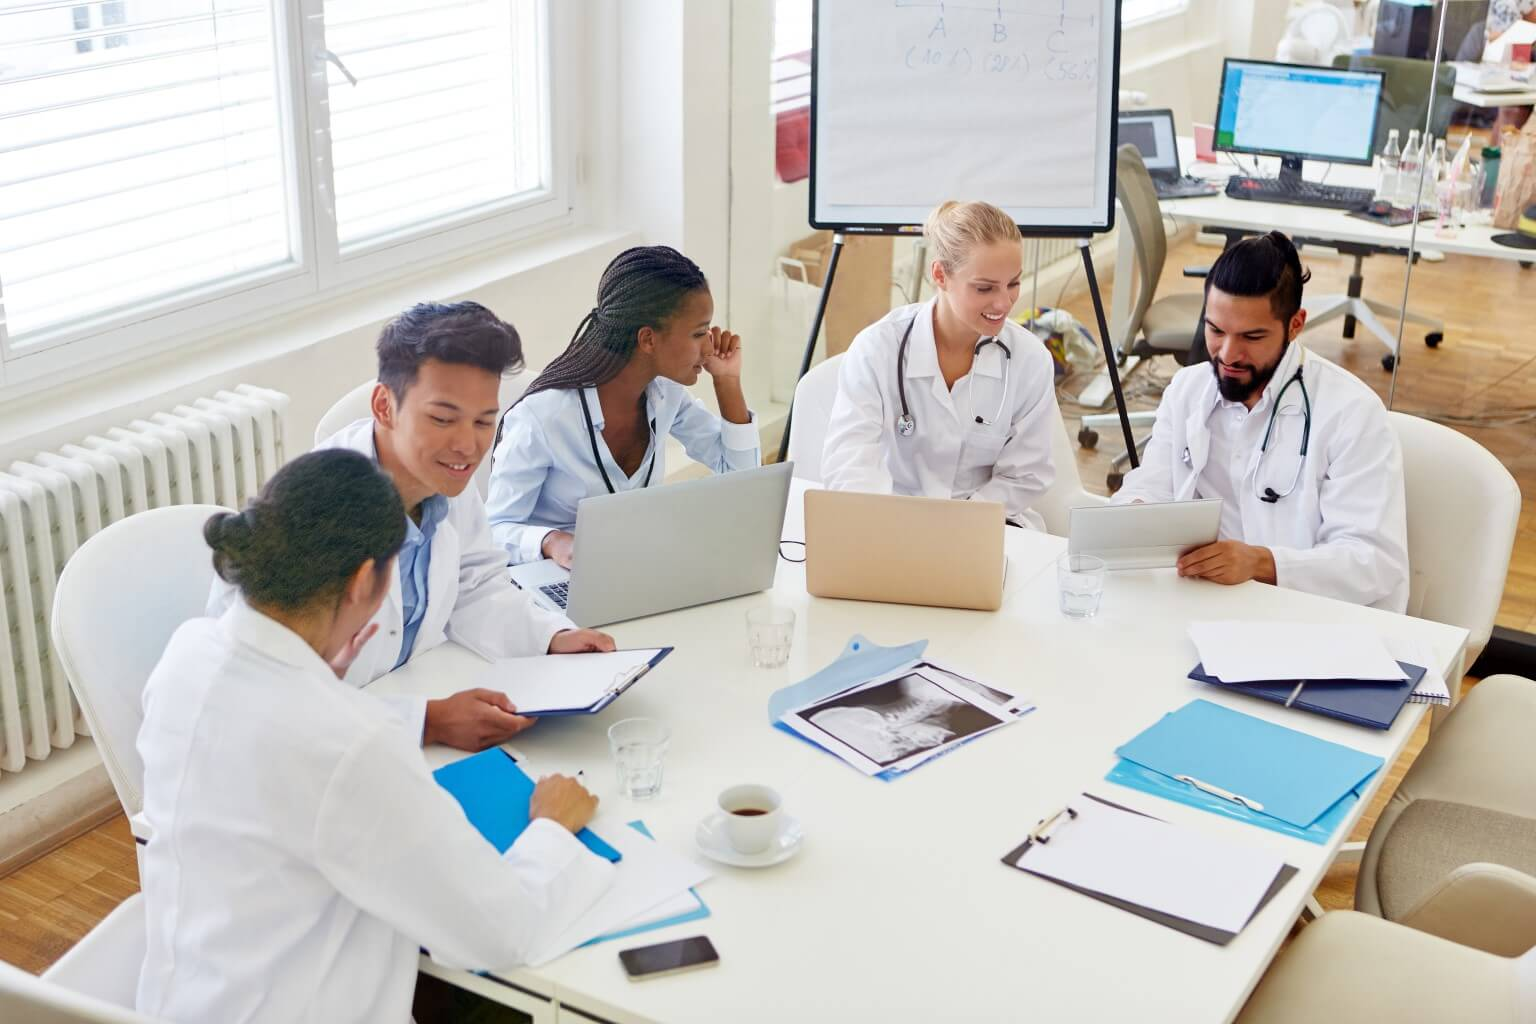 Physicians meeting at a table